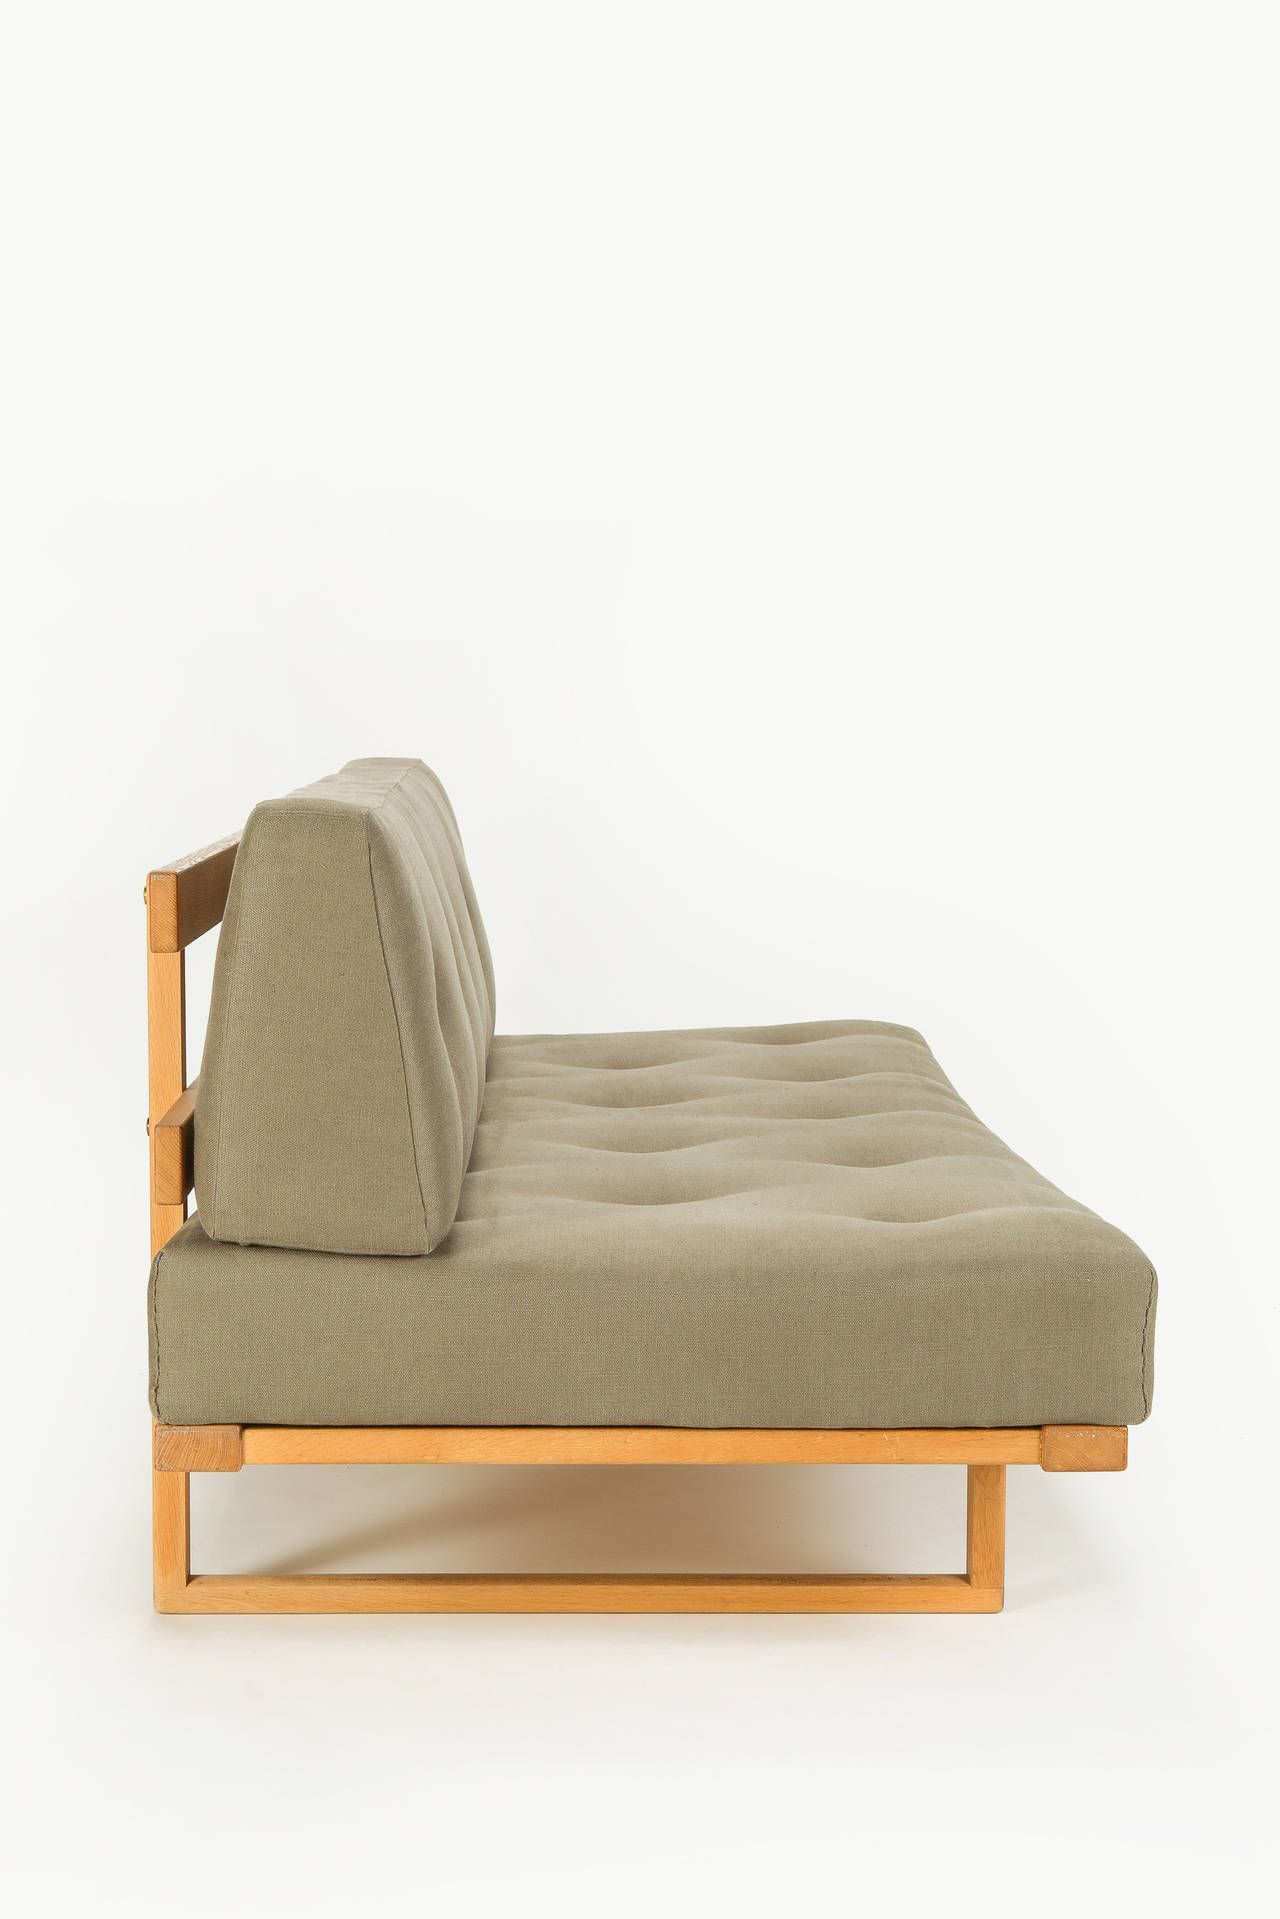 Brilliant Danish Oak Sofa Daybed By Borge Mogensen For Fredericia Alphanode Cool Chair Designs And Ideas Alphanodeonline